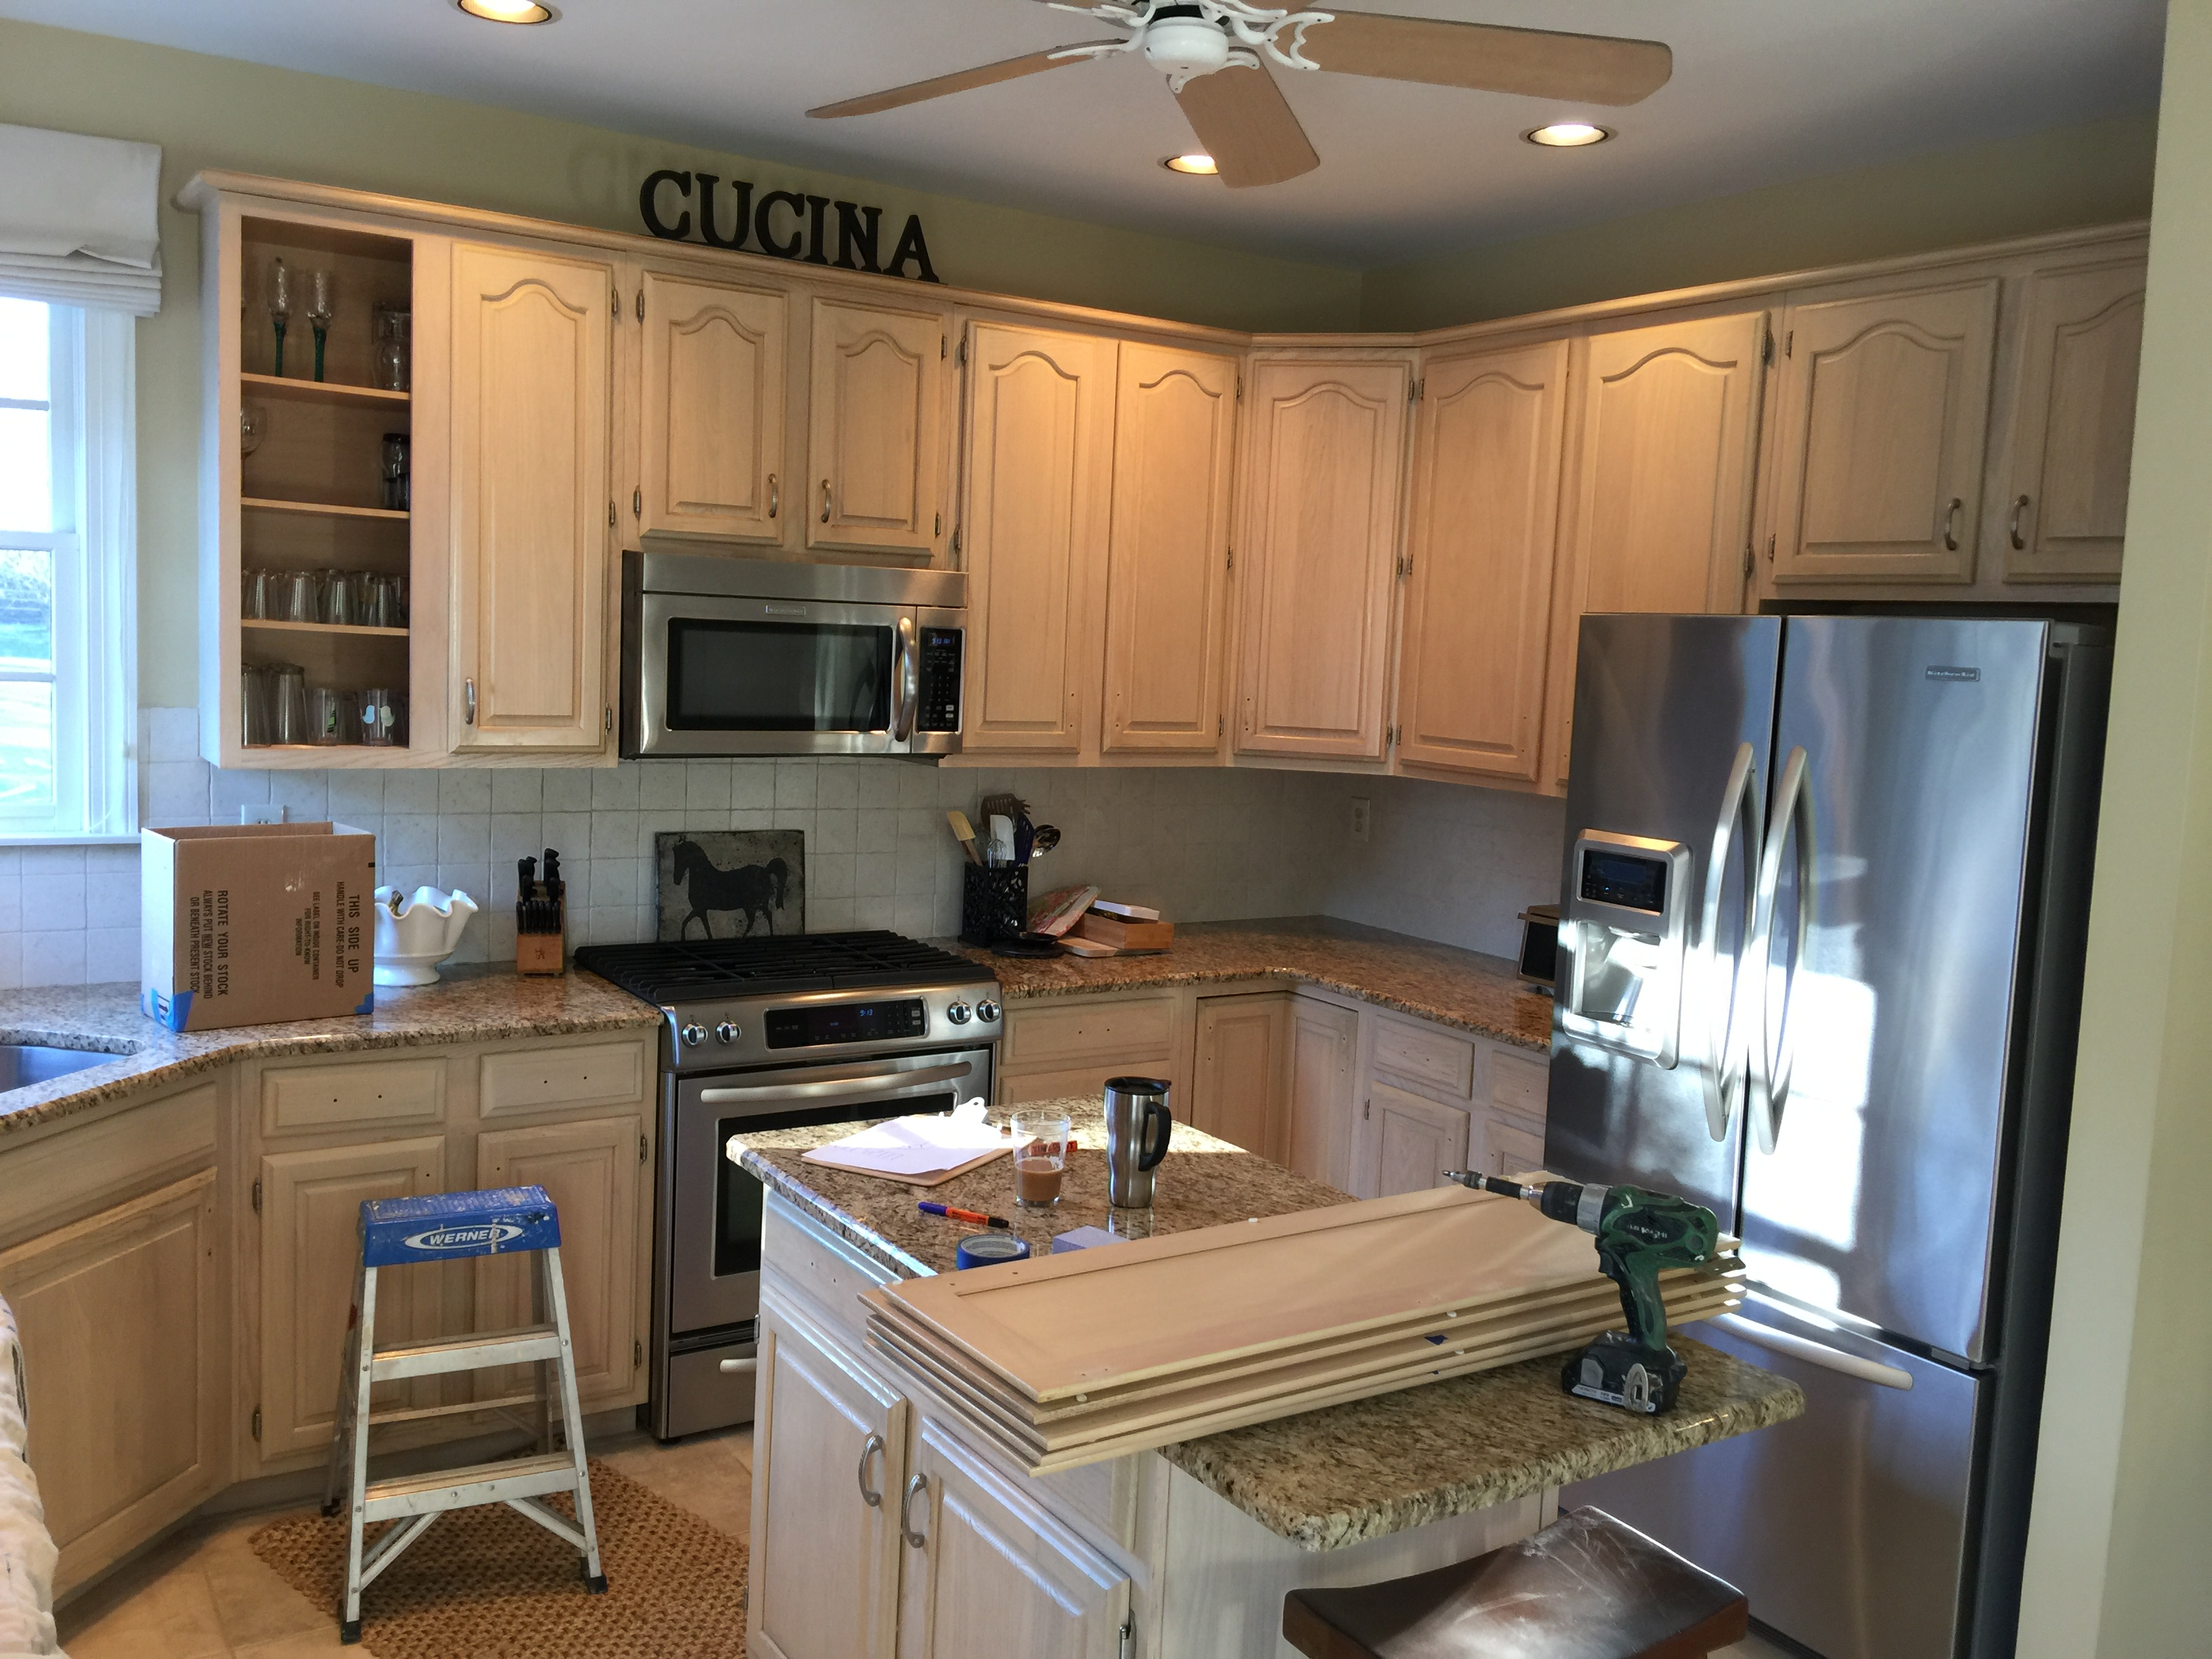 Container Cucina Interior House Painters For Your West Chester Pa Home Commercial